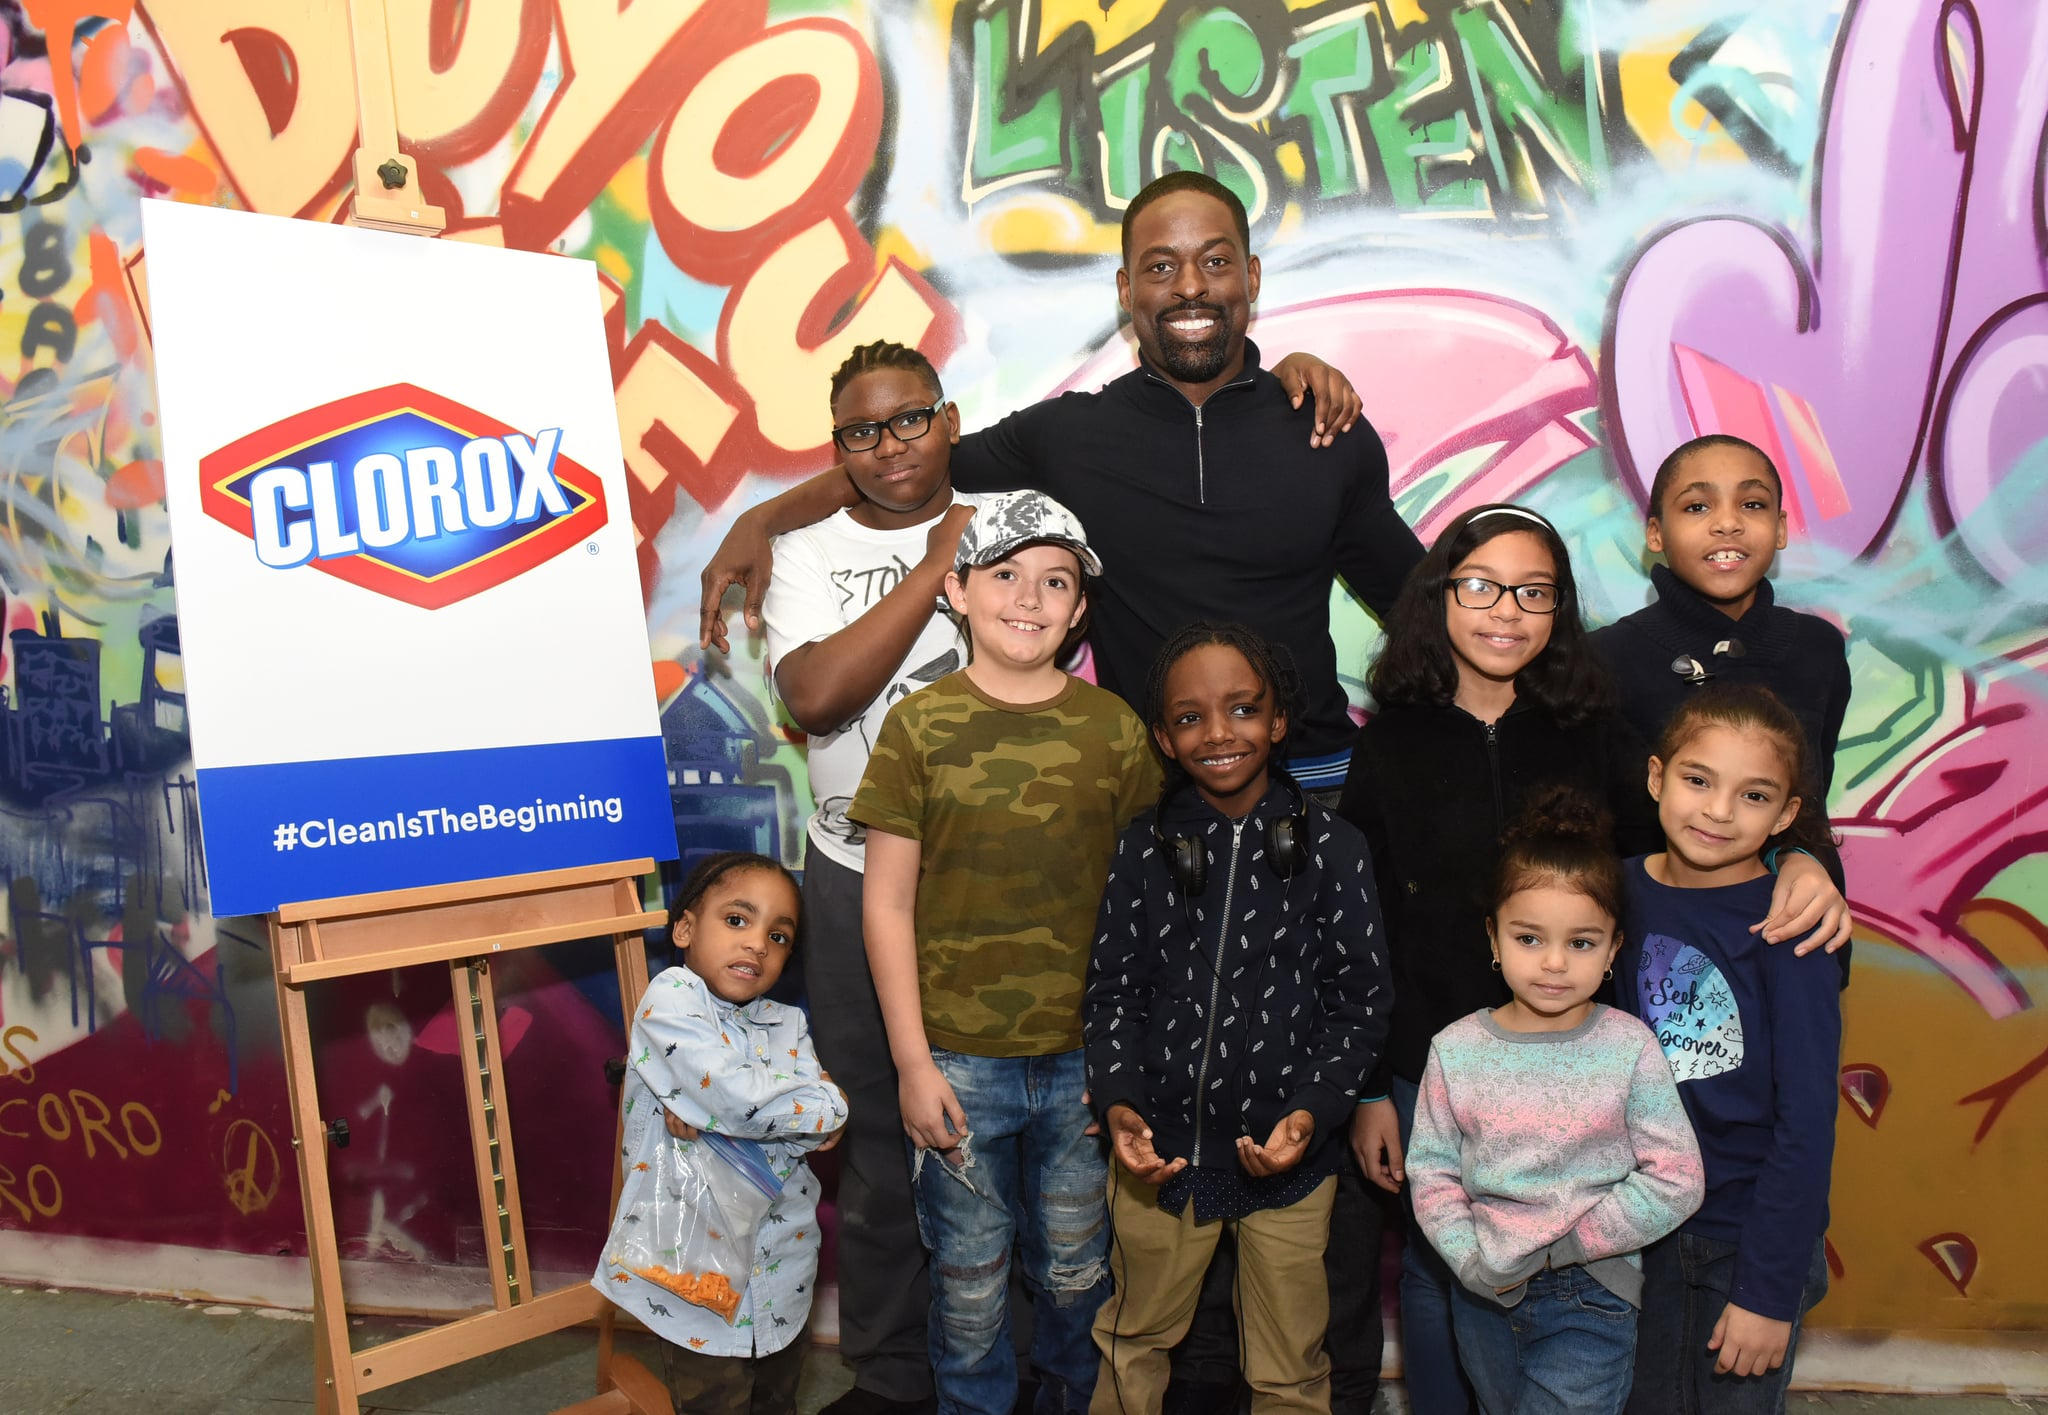 Award-winning actor Sterling K. Brown joins Clorox and Thrive Collective to celebrate the transformative power of clean at a new Youth Opportunity Hub in Harlem, New York, Tuesday, Feb. 27, 2018. The space was cleaned with a grant from Clorox and the help of 250 community volunteers to create new possibilities for youth as an arts hub and mentoring center. (Photo by Diane Bondareff/Invision for Clorox/AP Images)